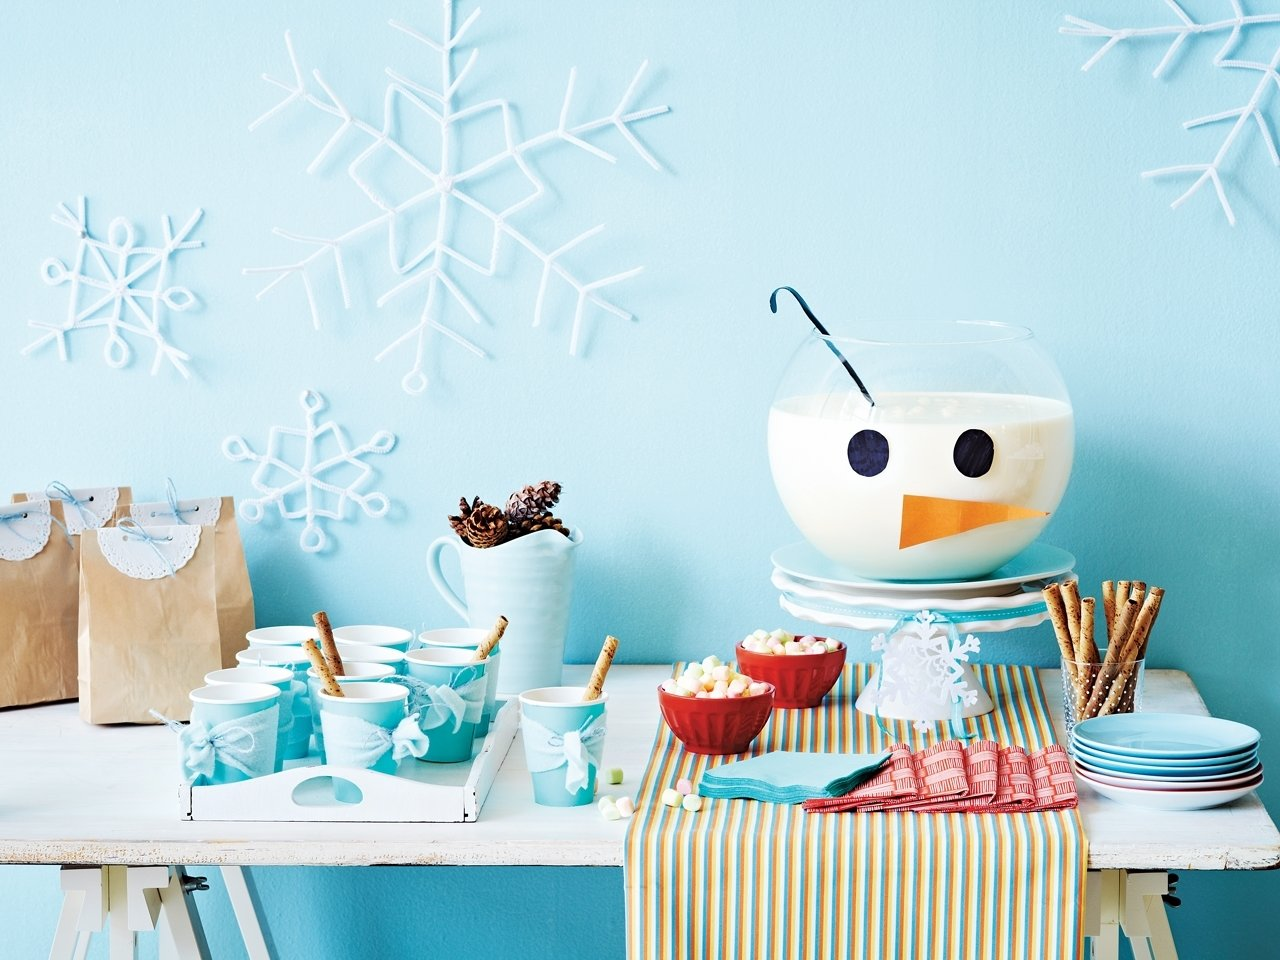 10 winter party ideas kids will love - today's parent